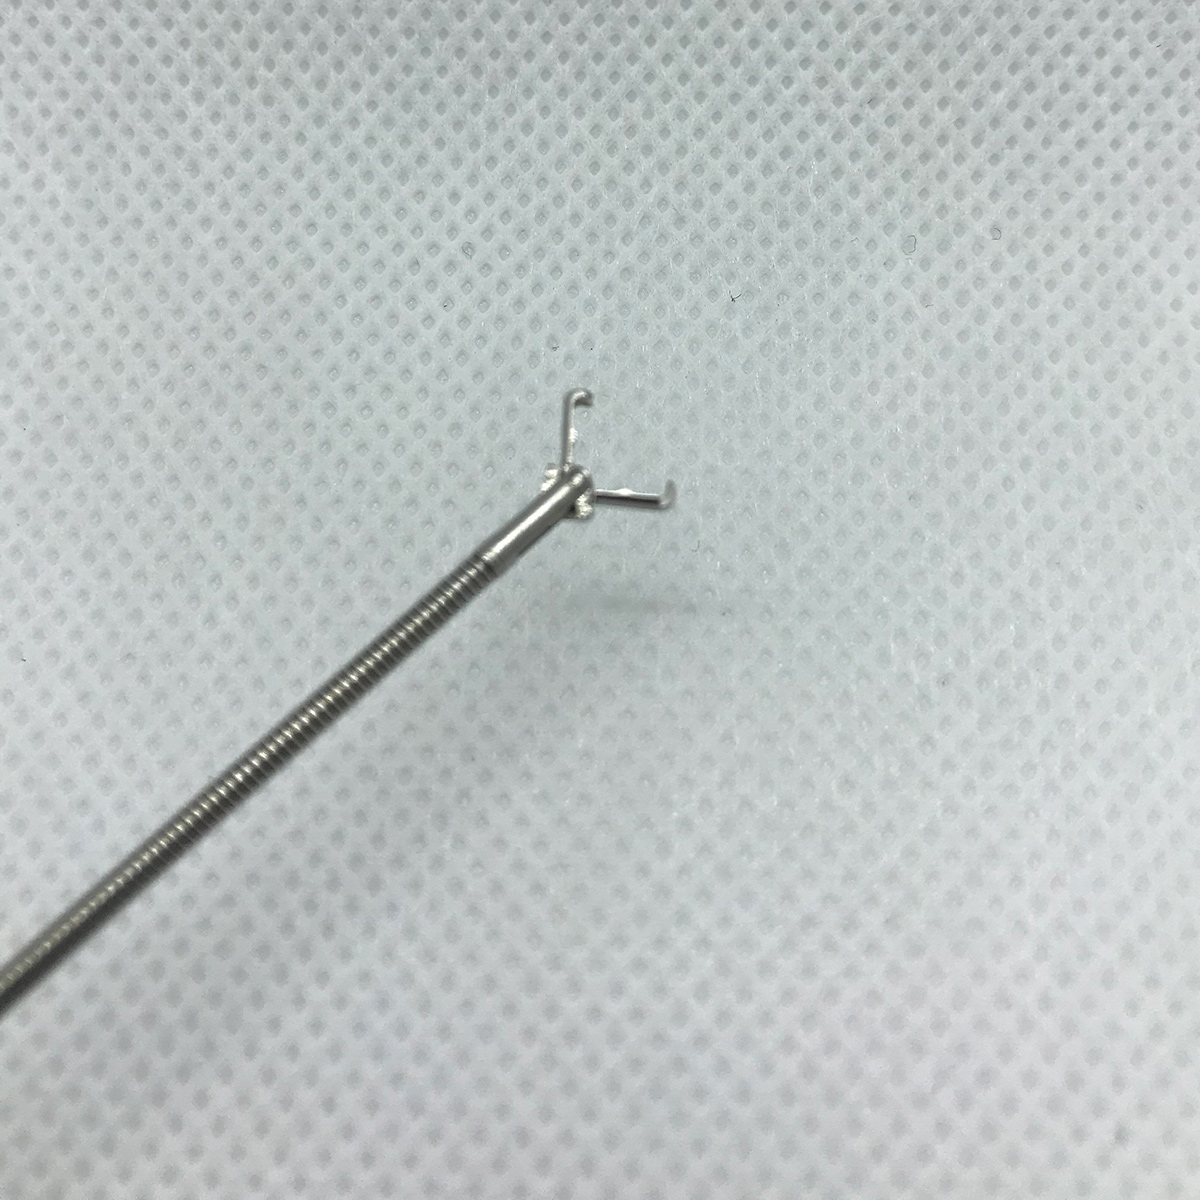 Disposable Cystoscopy Rat Tooth Grasping Forceps 1 7mm